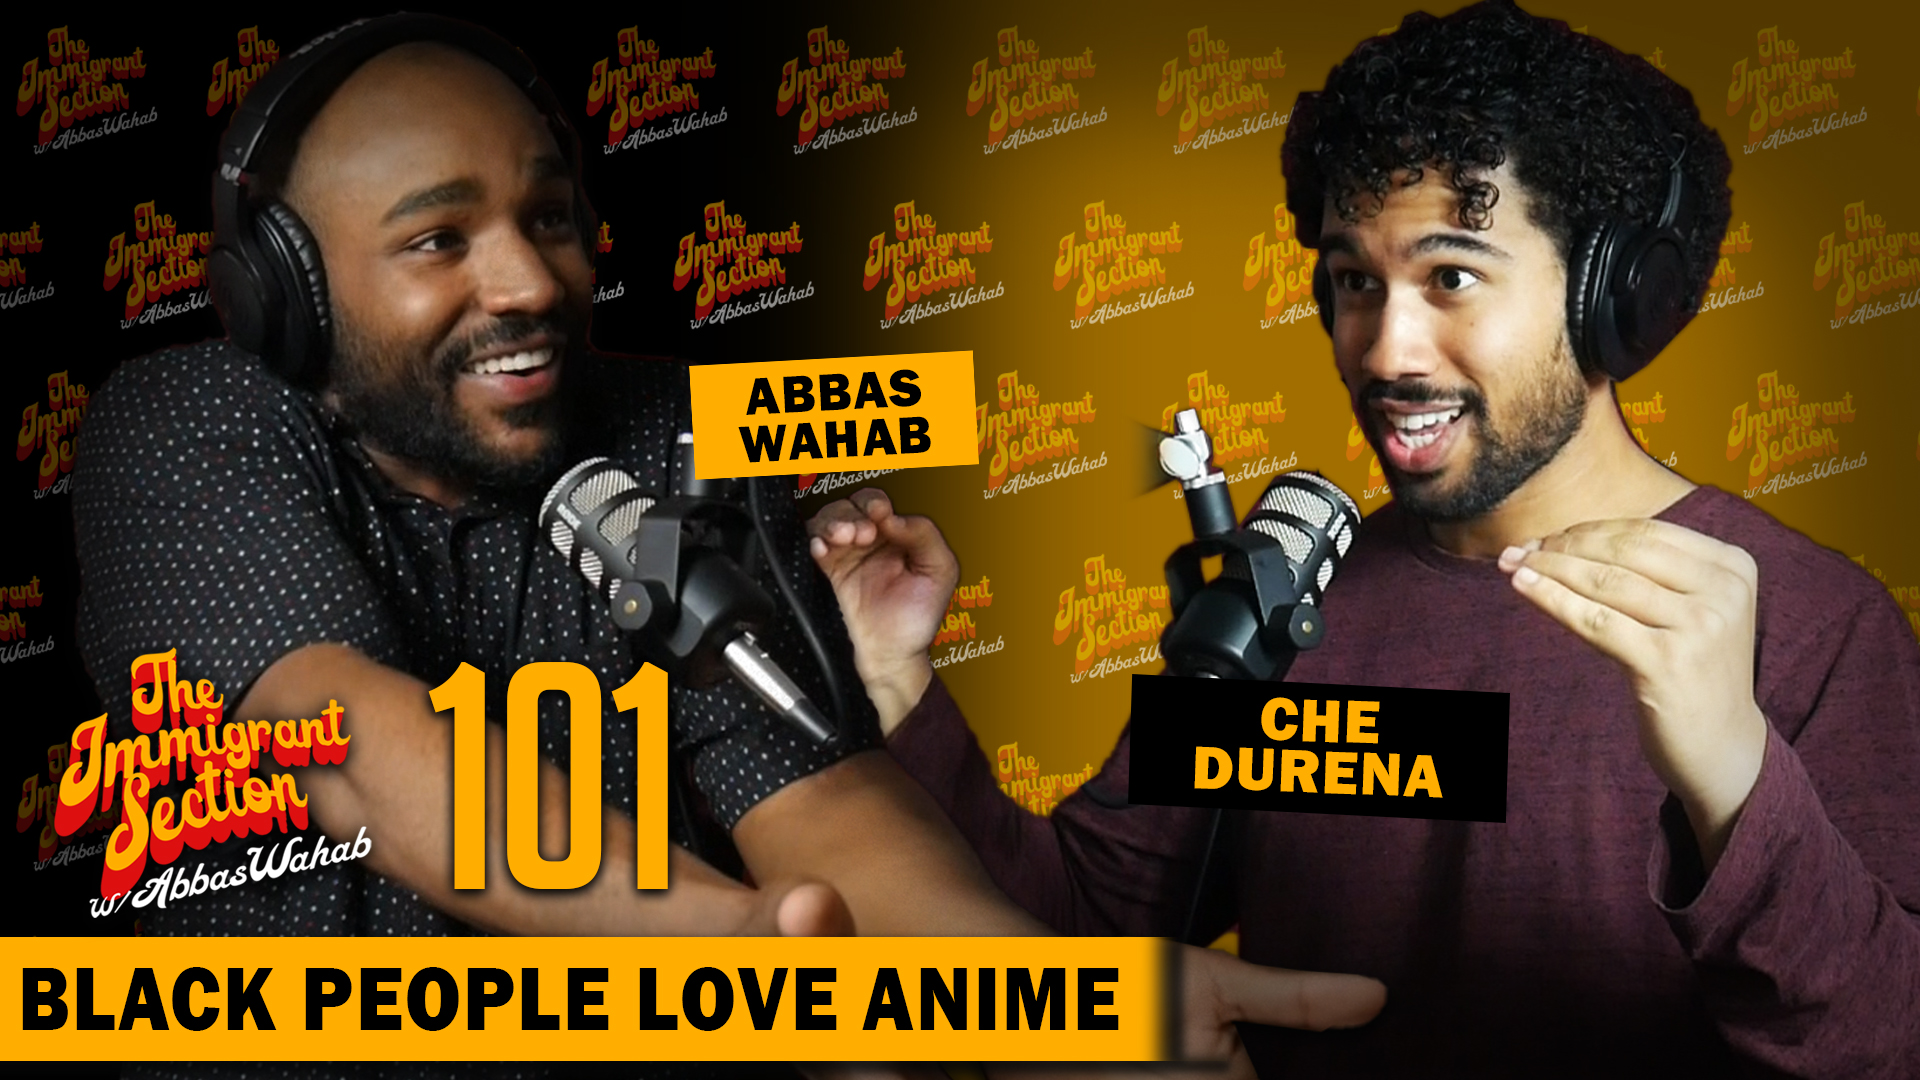 Black People Love Anime - The Immigrant Section with Abbas Wahab